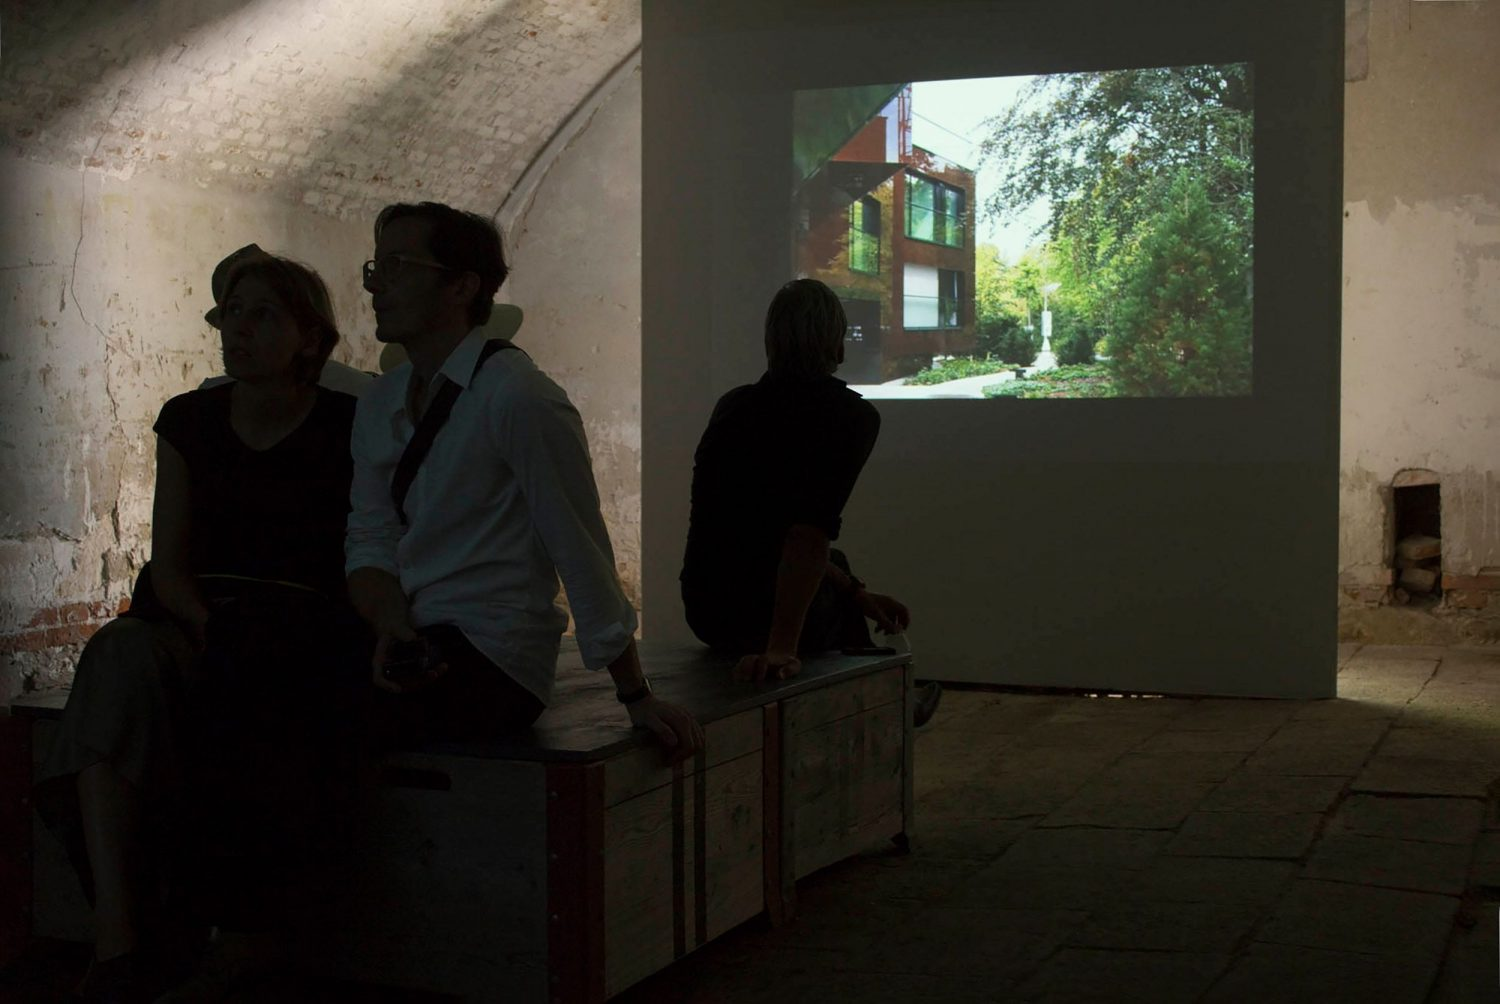 4 // The fourth room (Genius Loci / Common Ground - Several sites and their buildings) showed different films of buildings – public buildings and private ones.